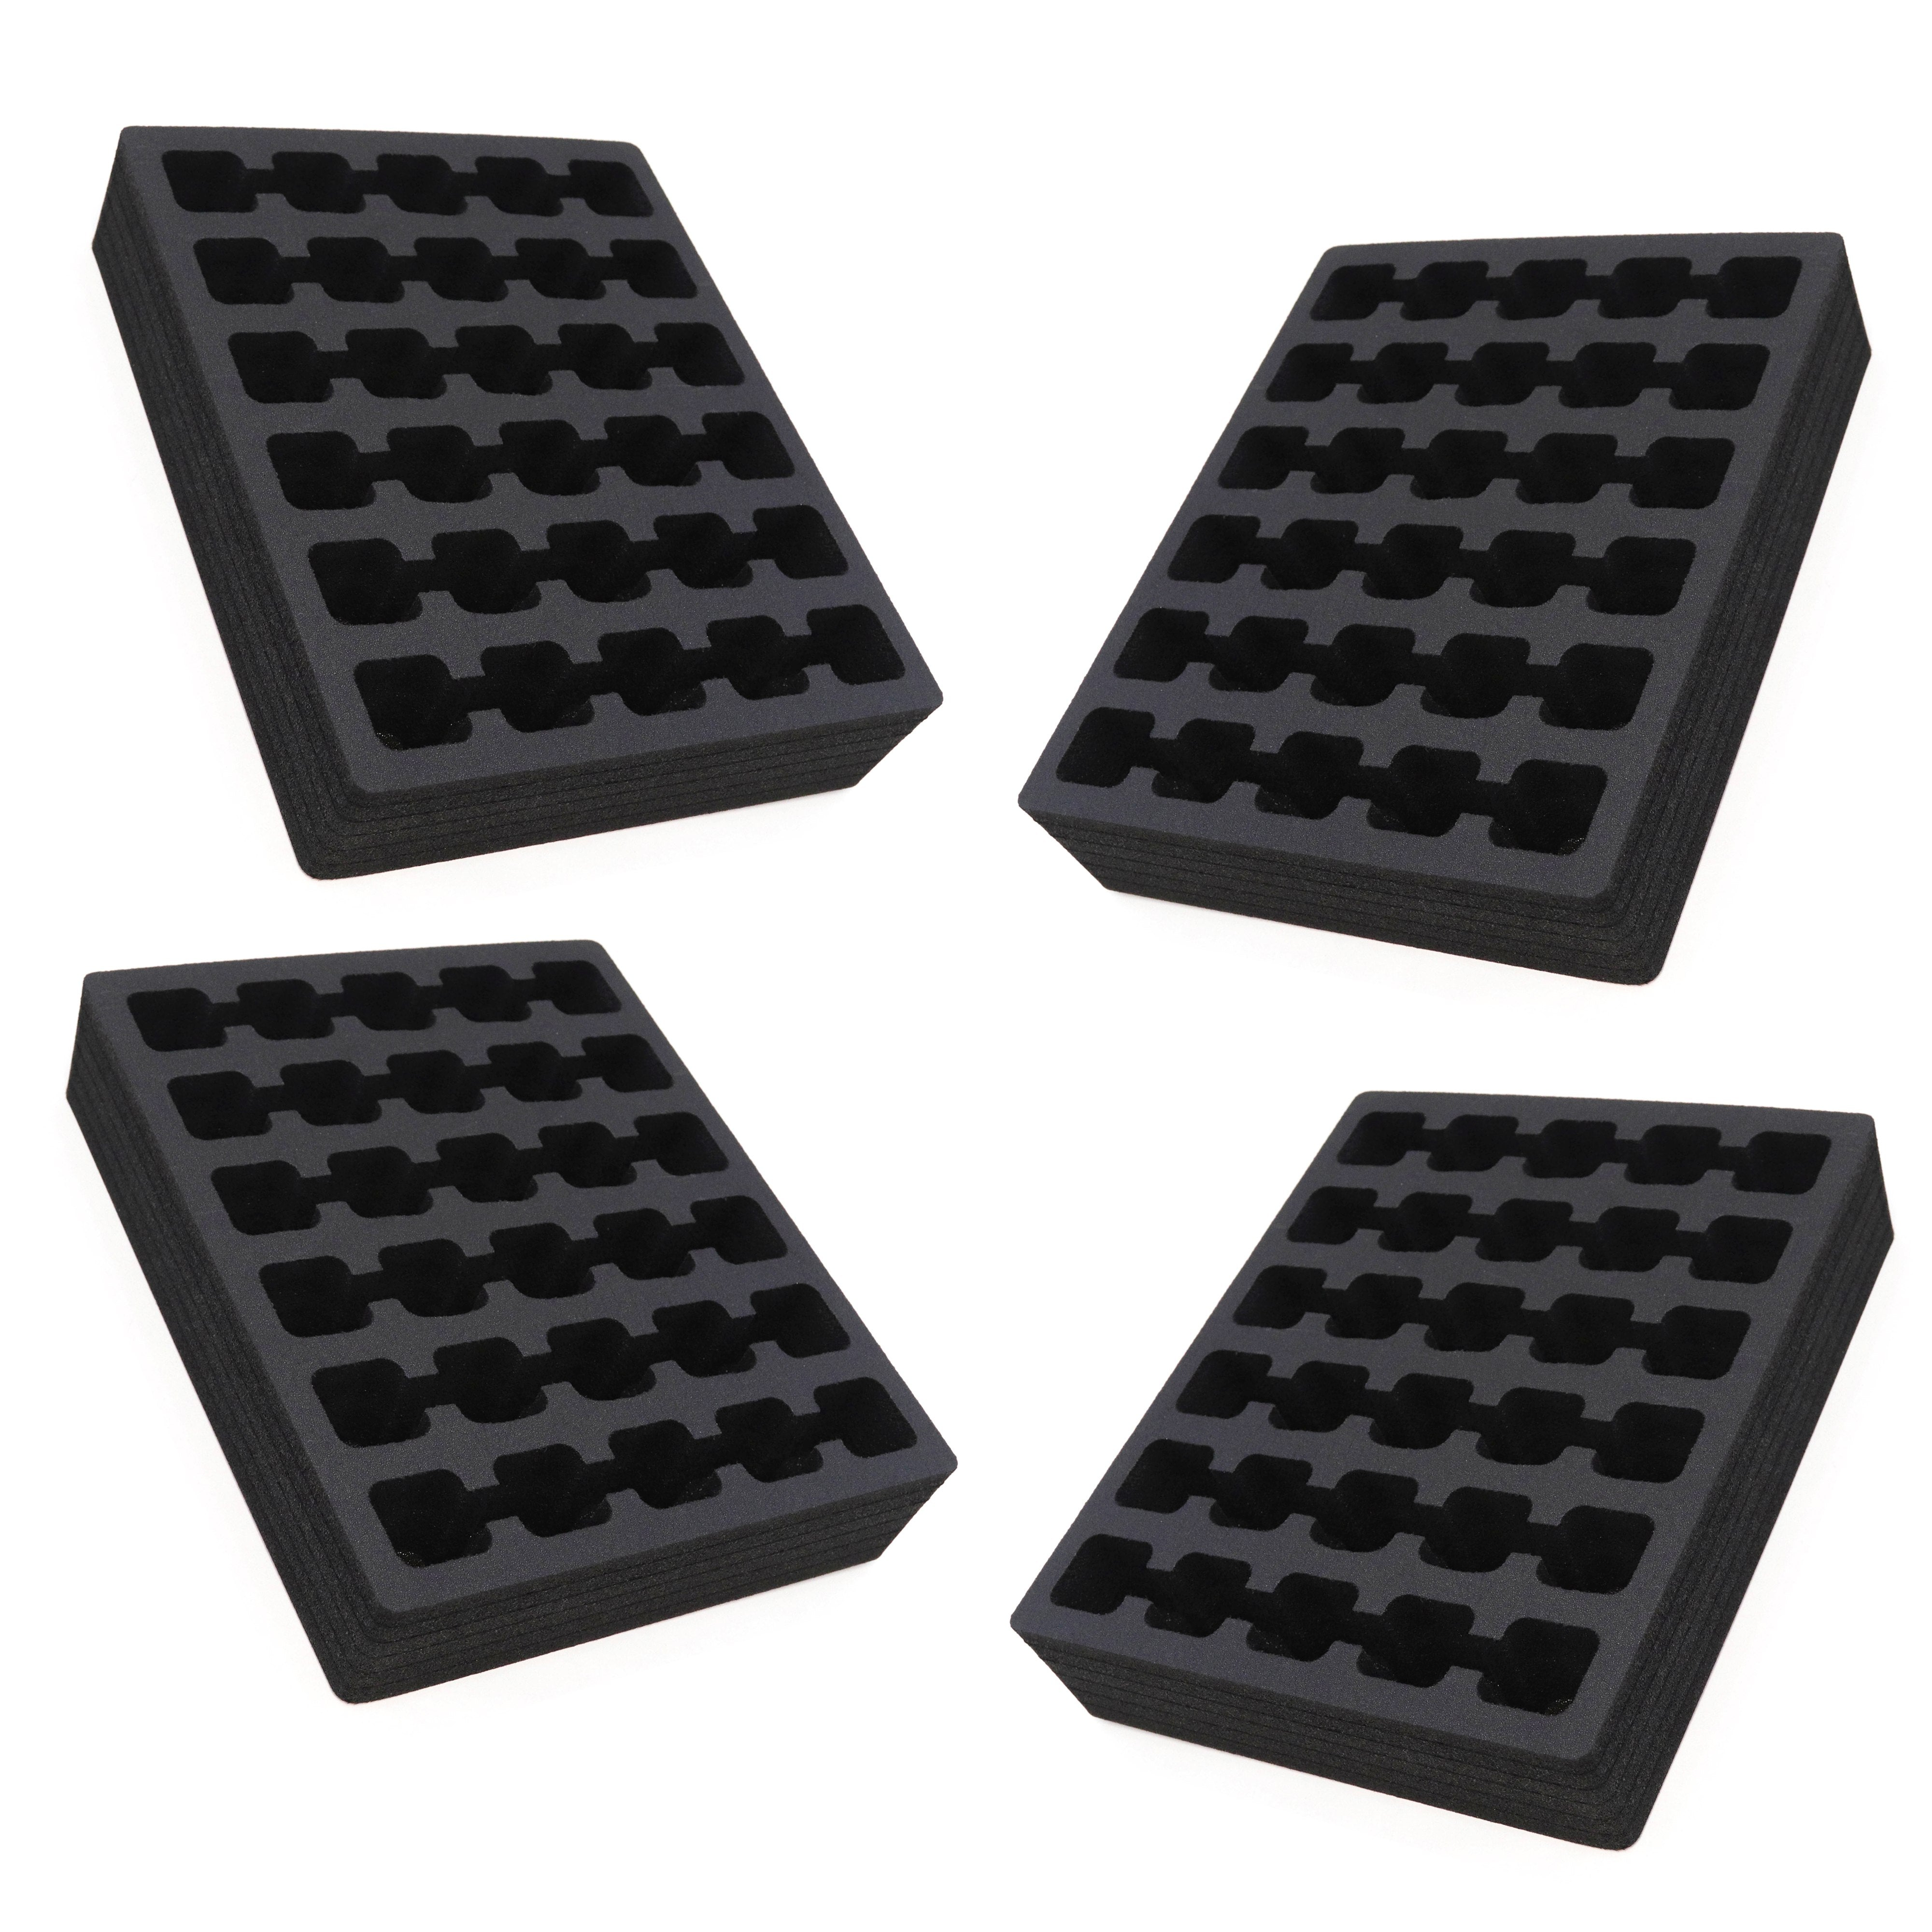 4 Nail Polish Drawer Organizers Tray Washable Waterproof Insert 8.9 x 10.9 x 2 Inches 30 Compartments Black